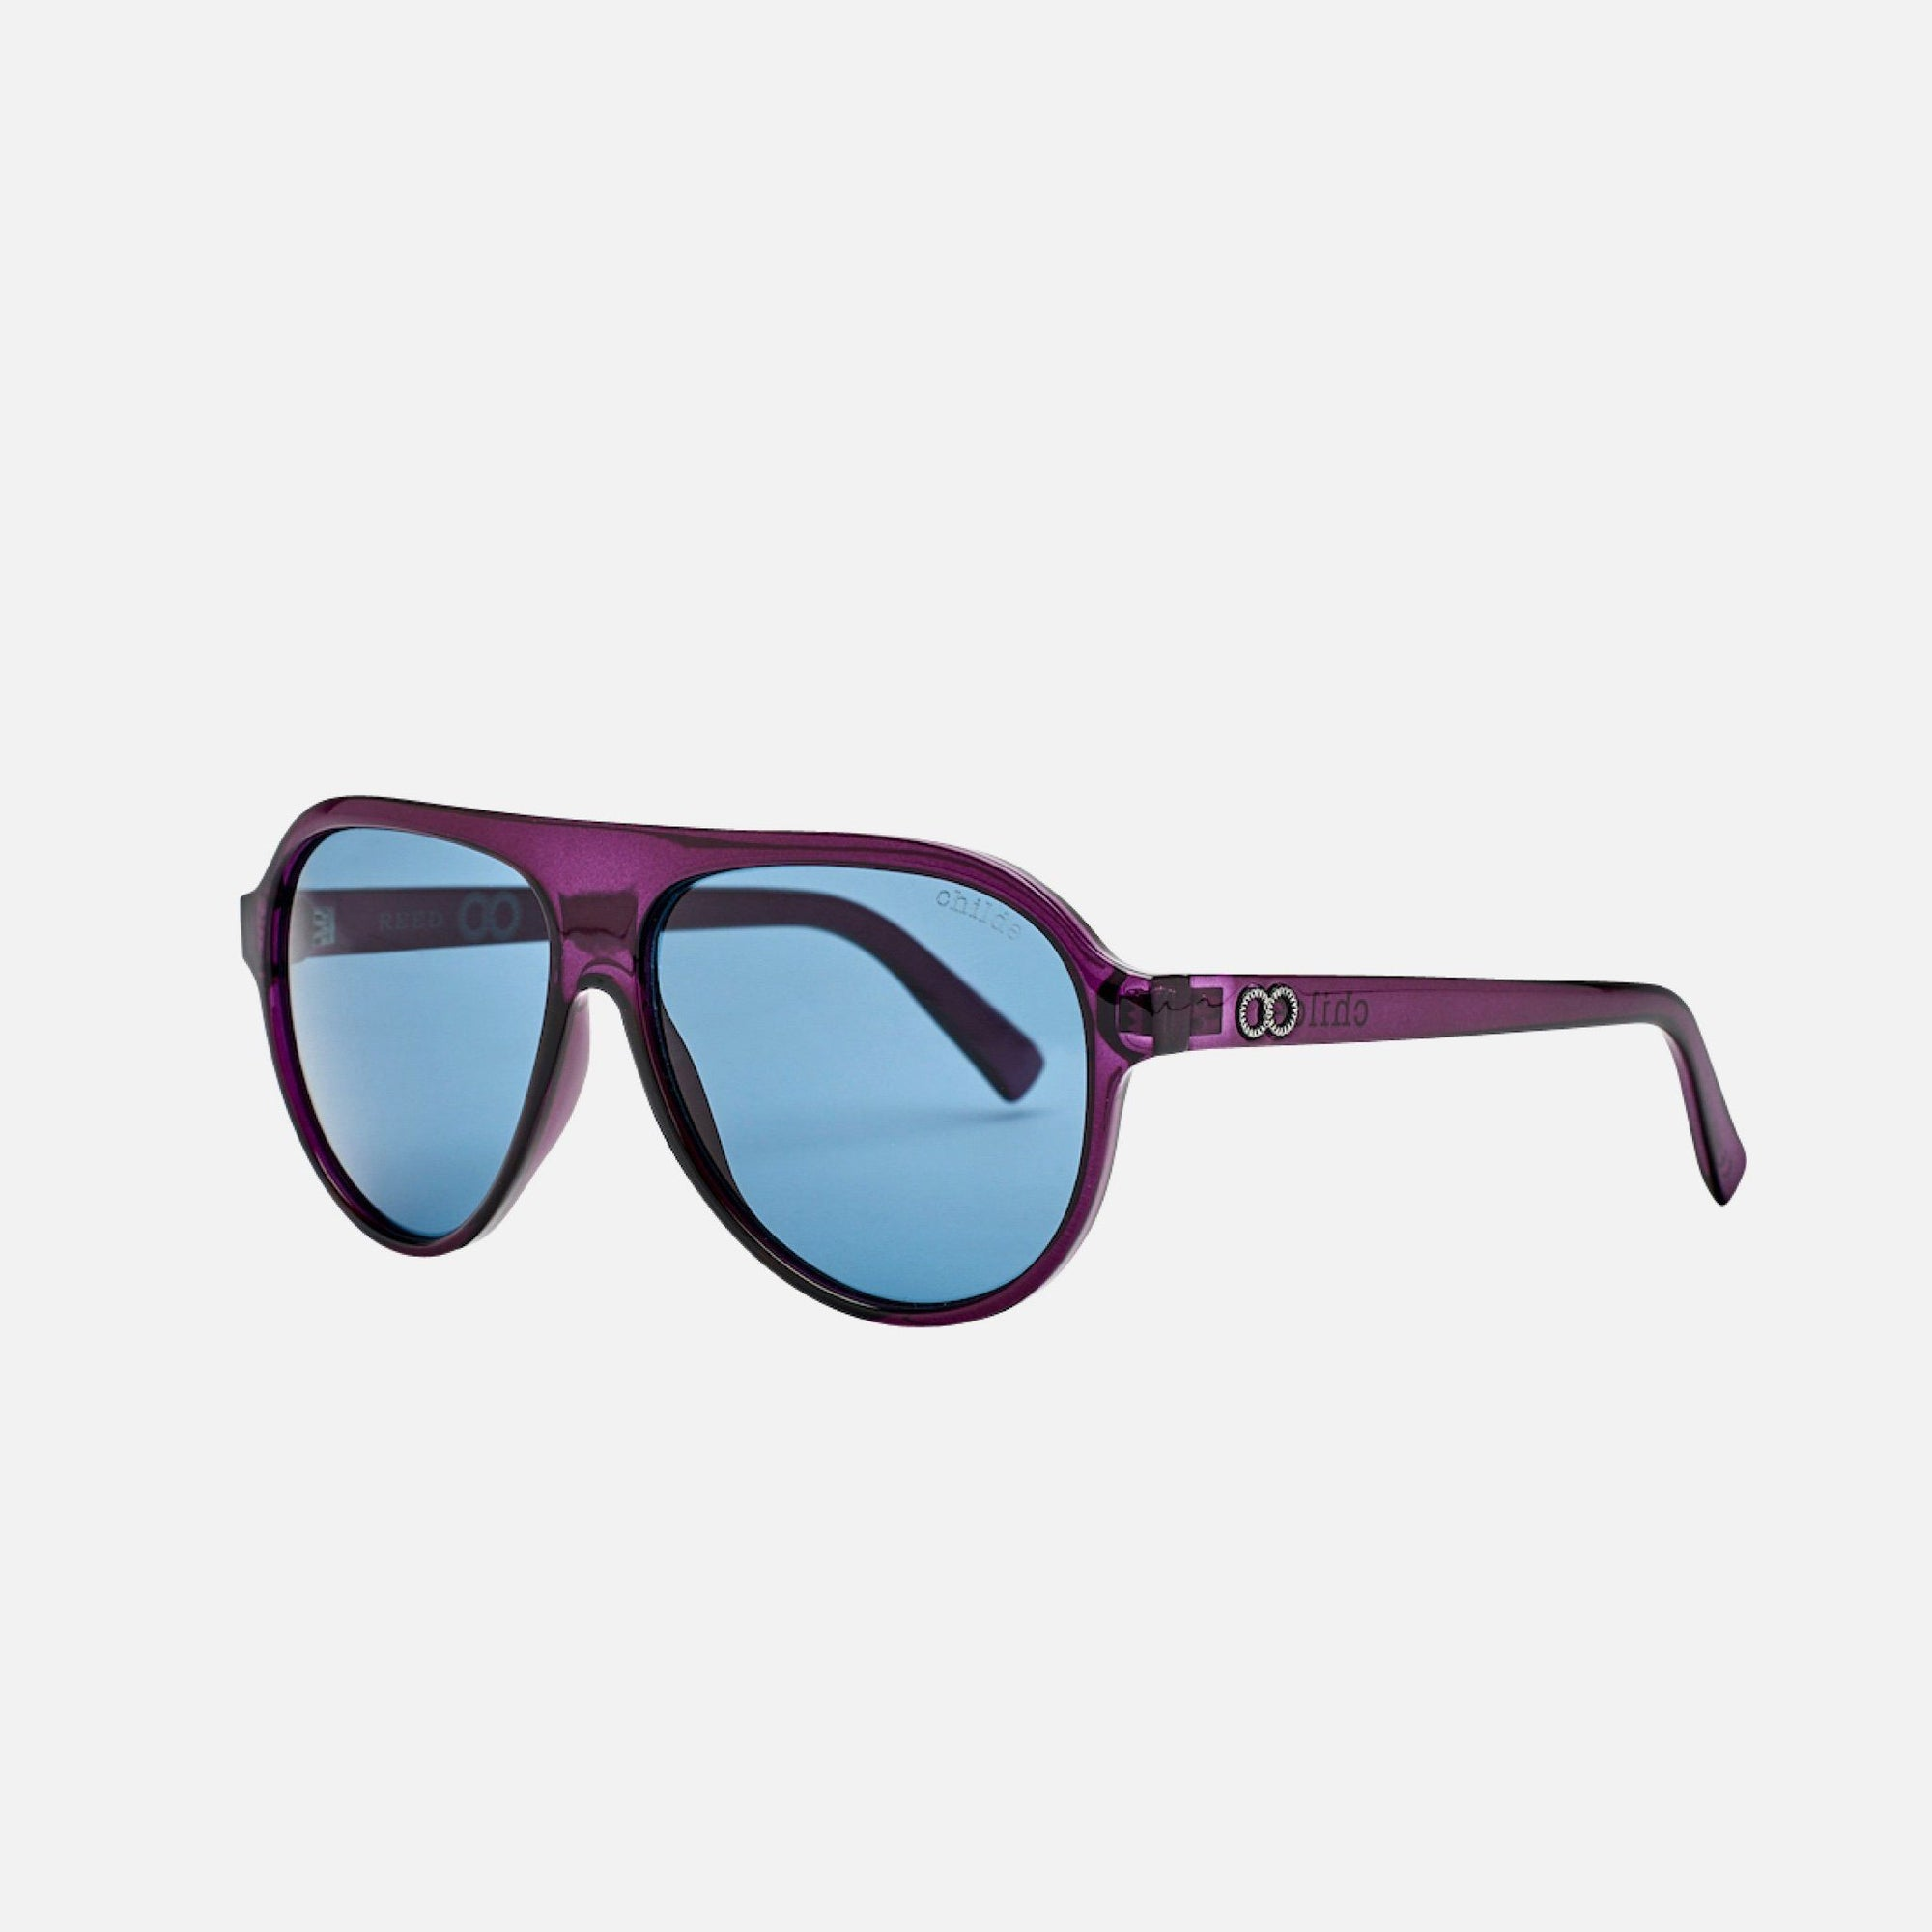 REED Translucent Plum Purple | Blue Telluric Lens